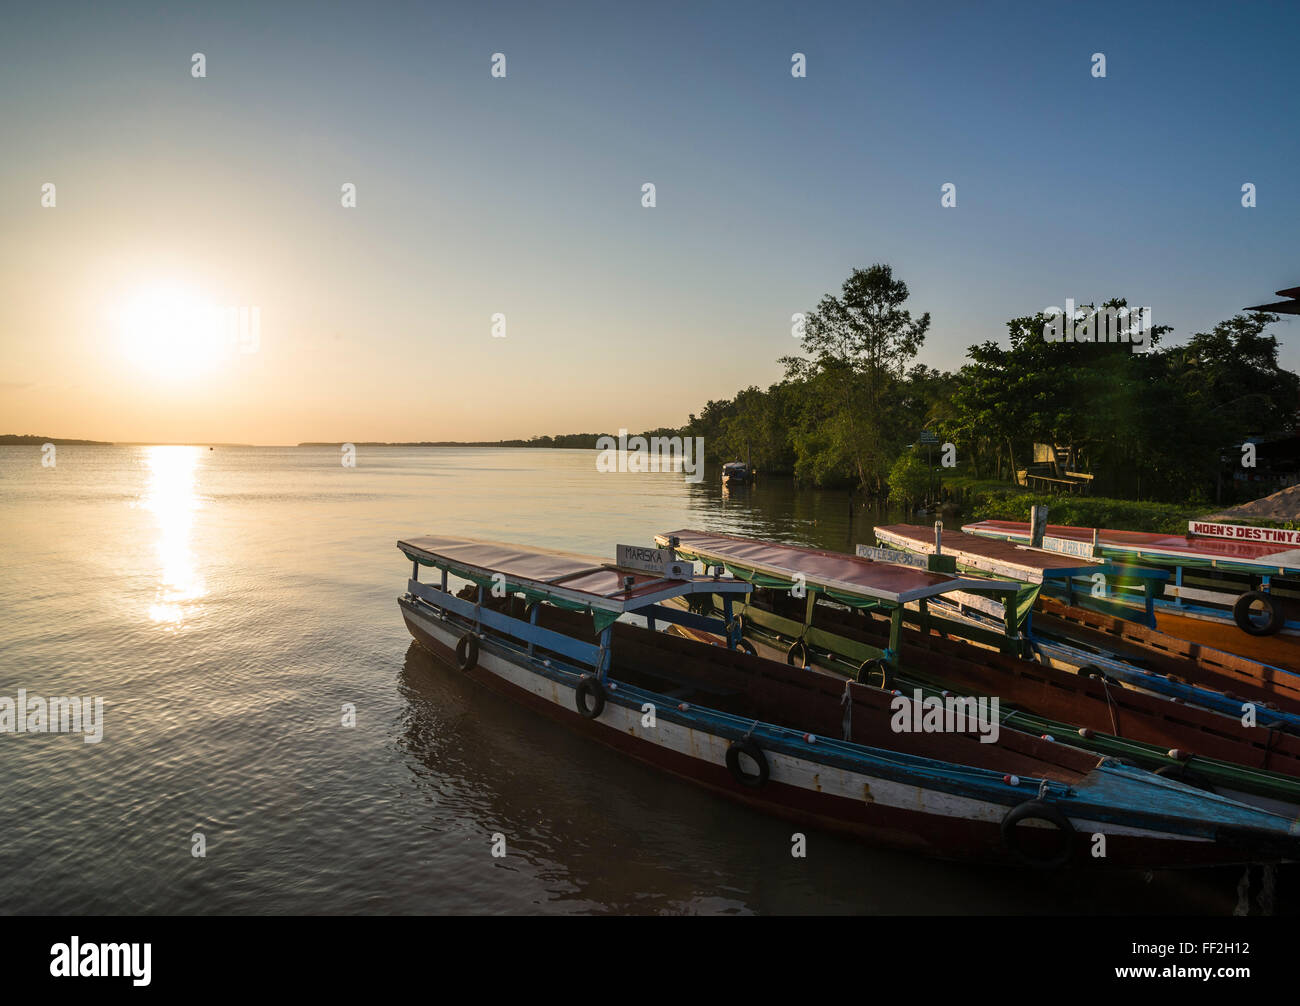 Fishing boats at sunset on the Suriname River near Paramaribo, Surinam, South America - Stock Image